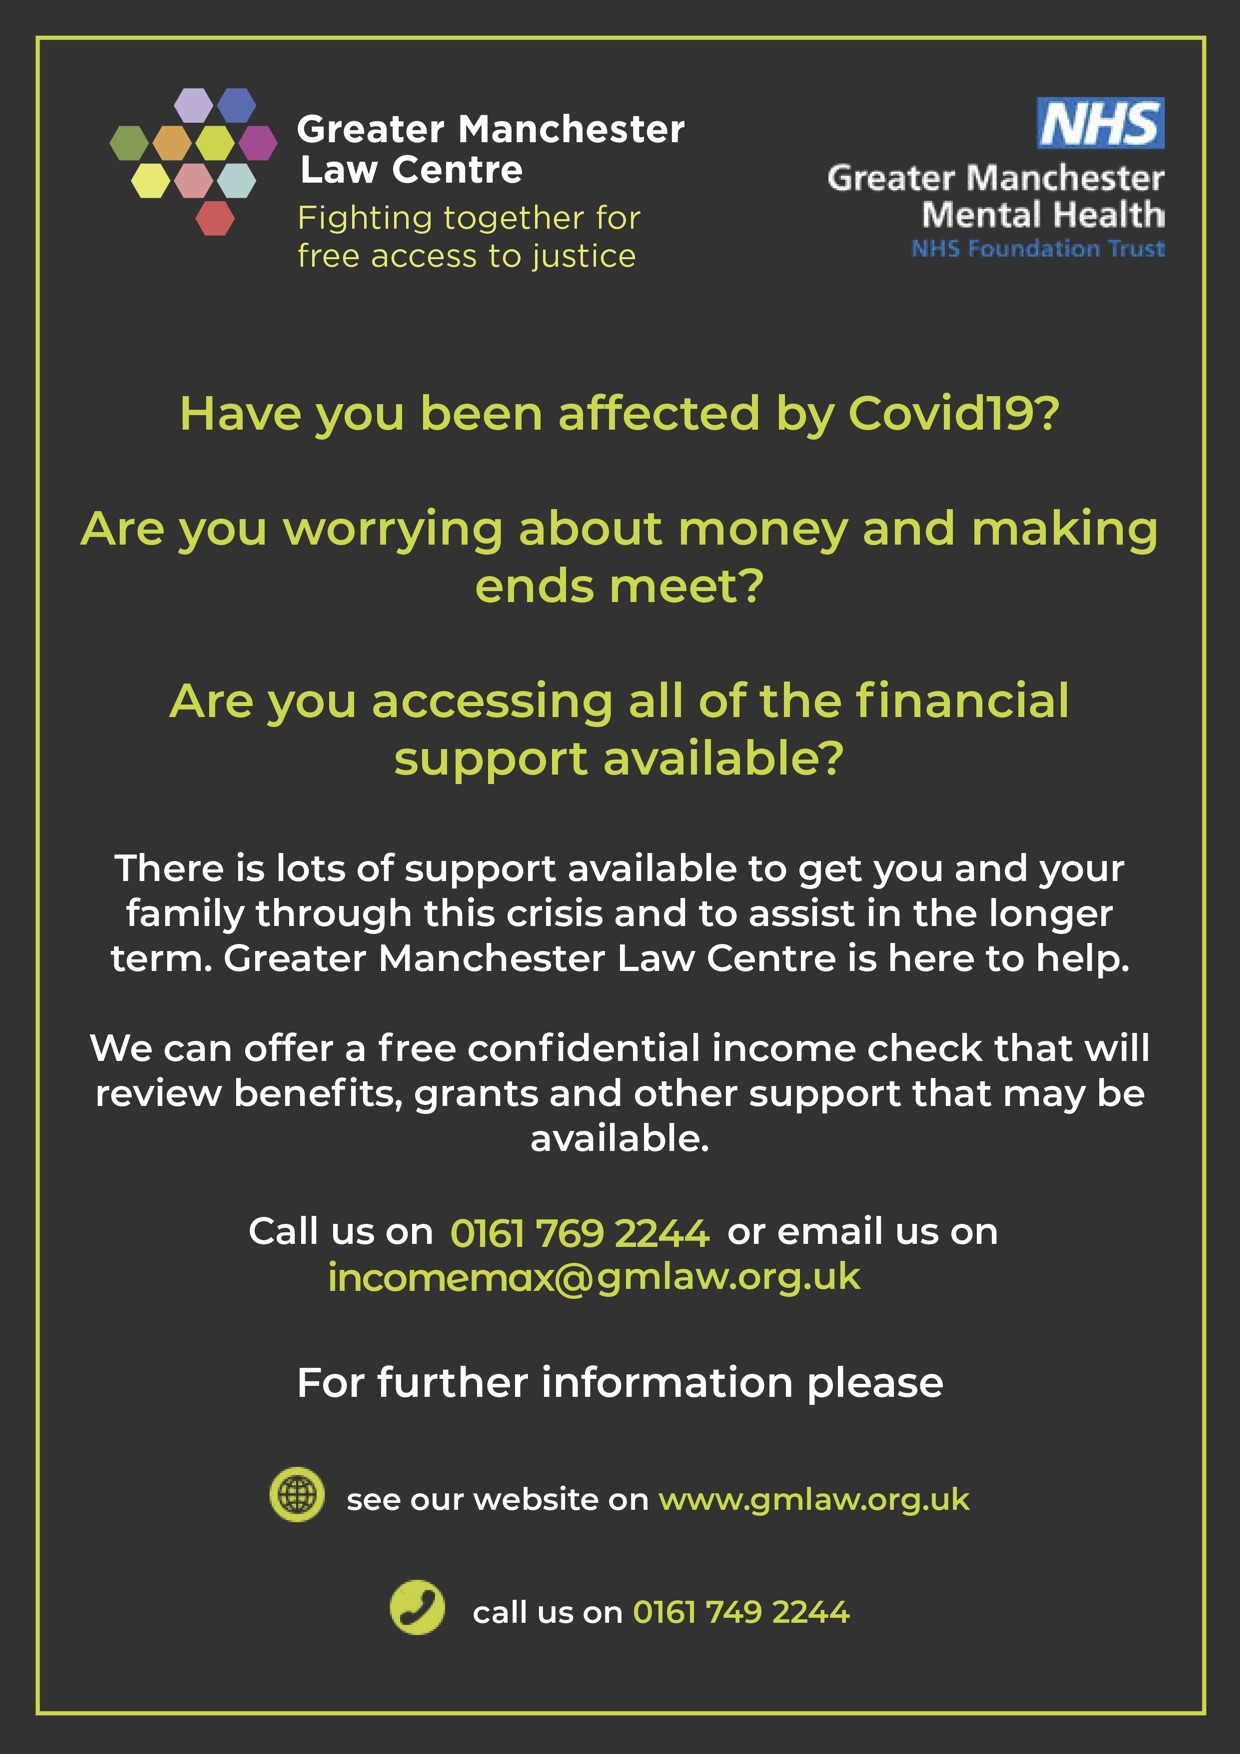 """Image is a leaflet from GMLC asking """"Have you been affected by Covid-19? Are you worrying about money and making ends meet? Are you accessing all of the financial support available?"""" It then explains how GMLC has lots of support available if you call us. Please see our contact page for updated details on our number and email address."""